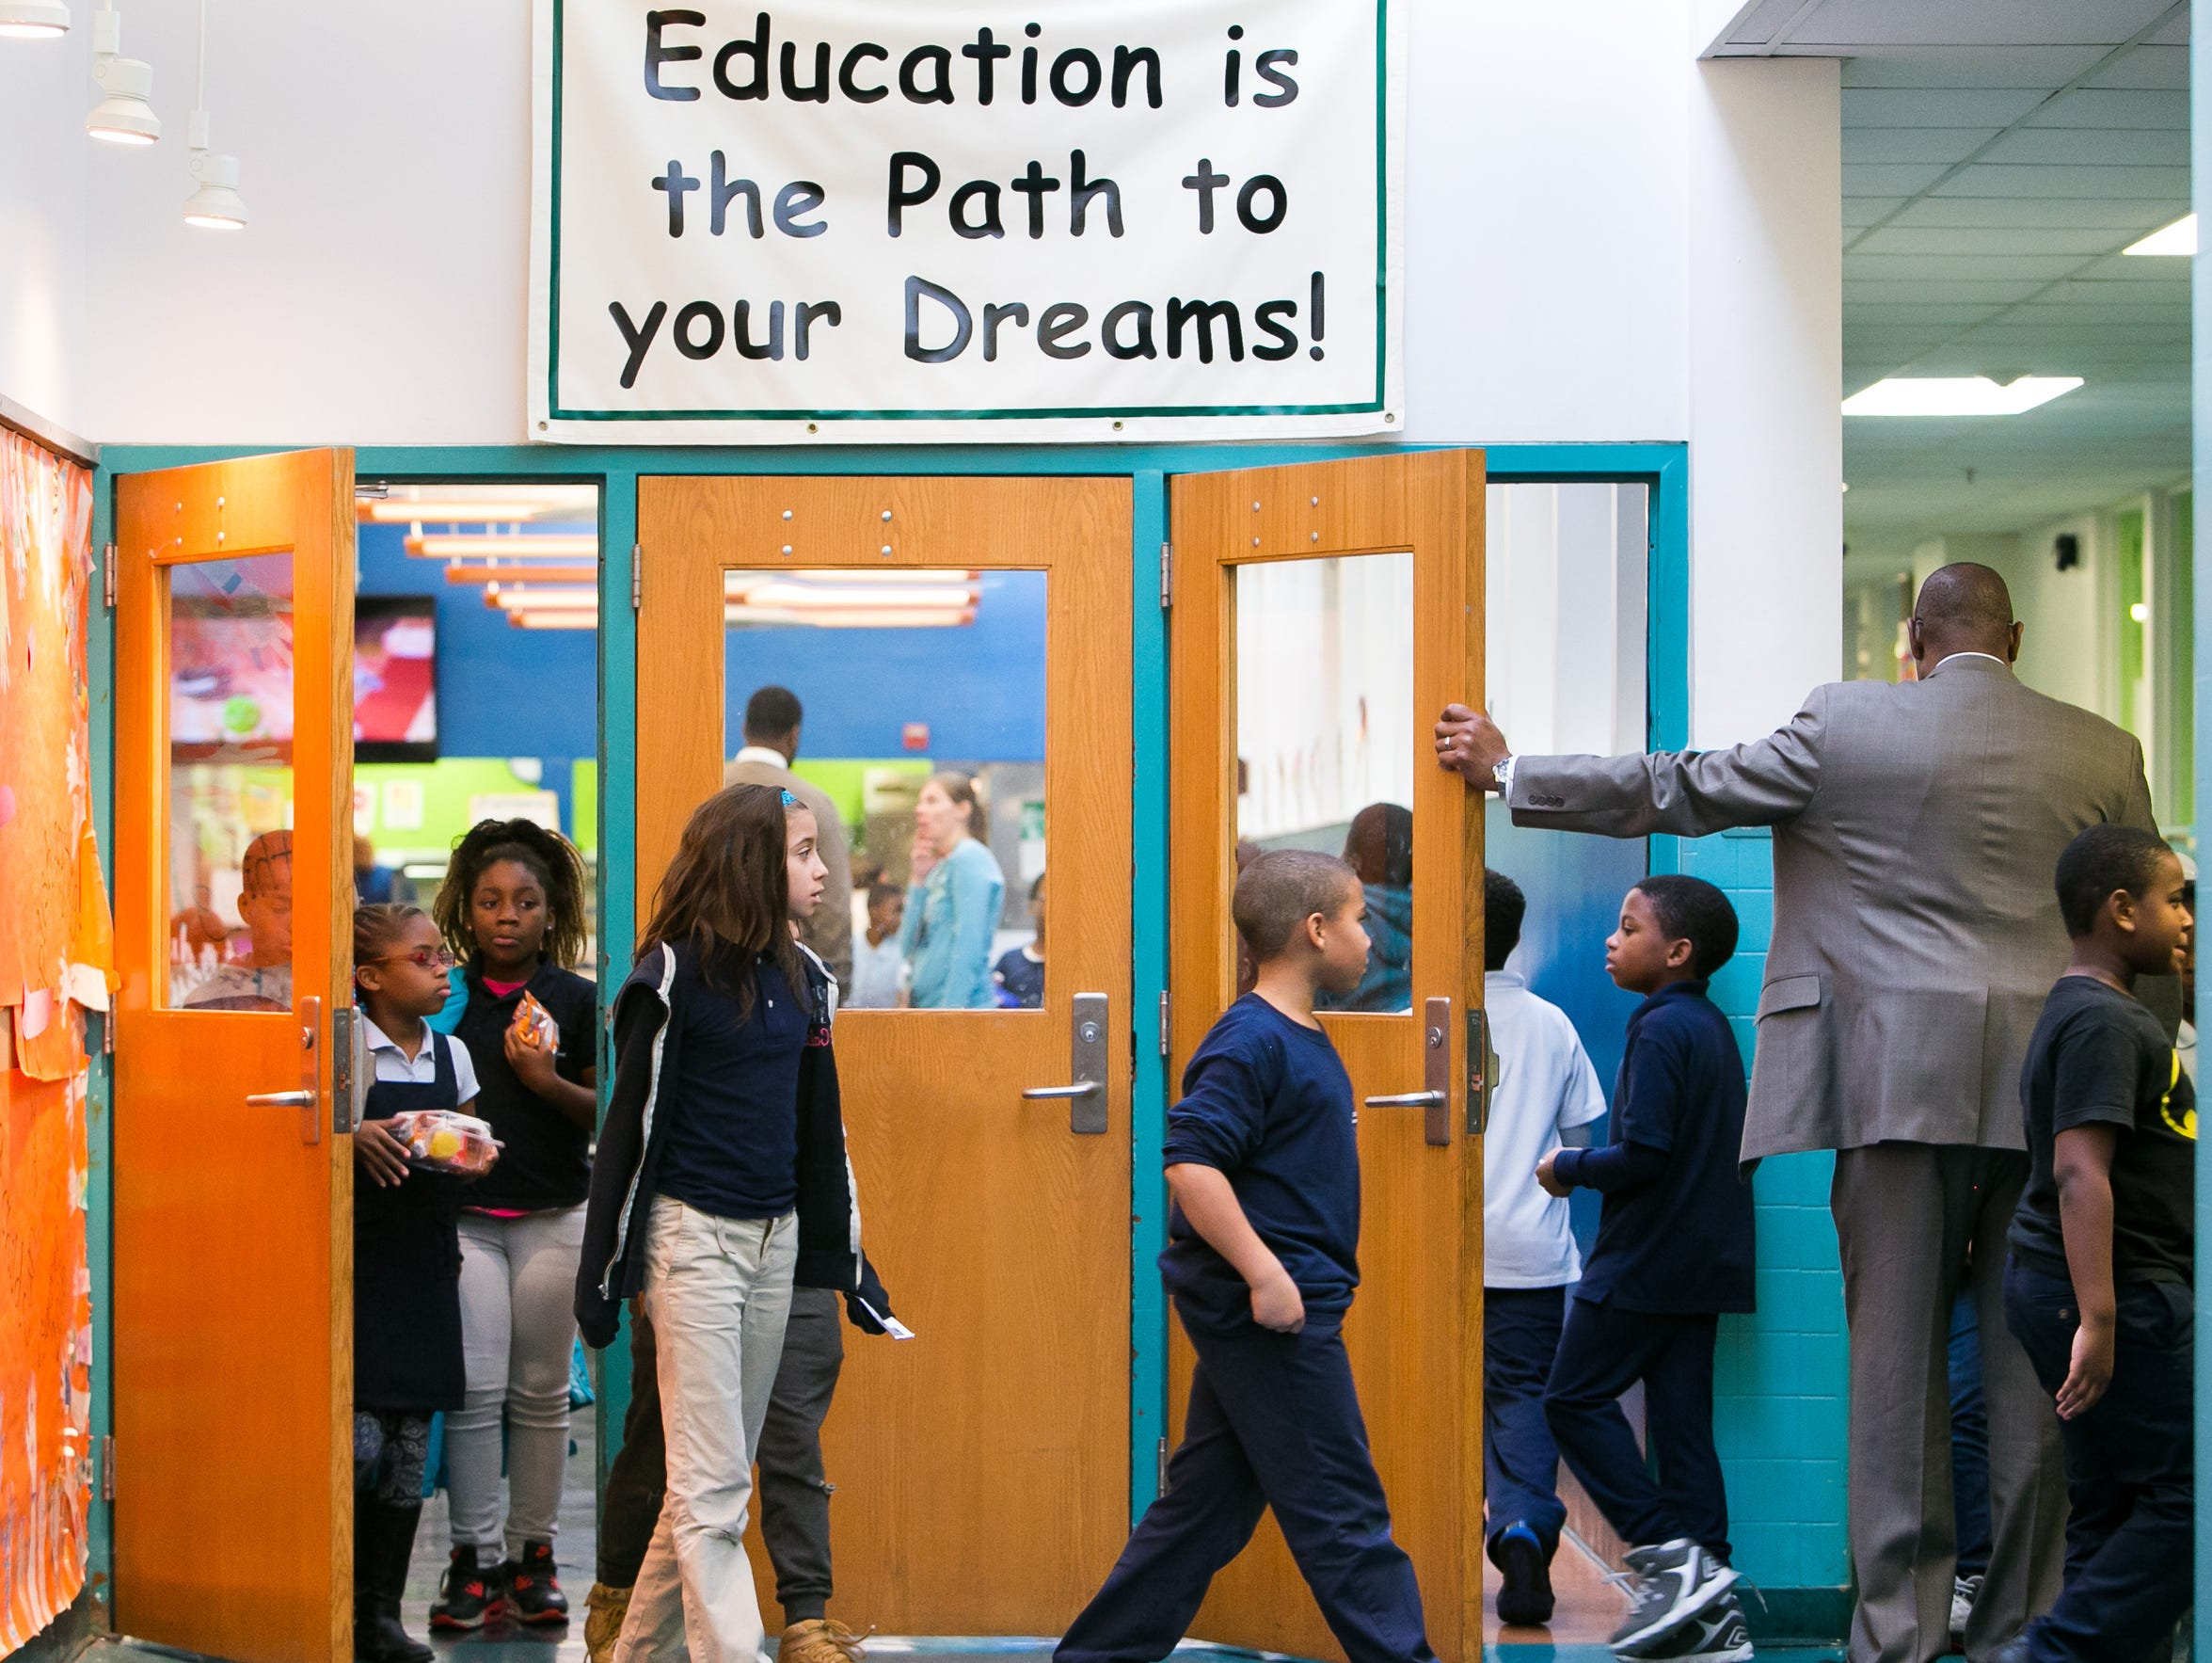 Principal Jeffers Brown holds the door as students arrive for their lunch at Stubbs Elementary School in this file photo. He said the school has held several trauma-informed workshops, which teach staff how to cope with students' emotional and behavioral issues.